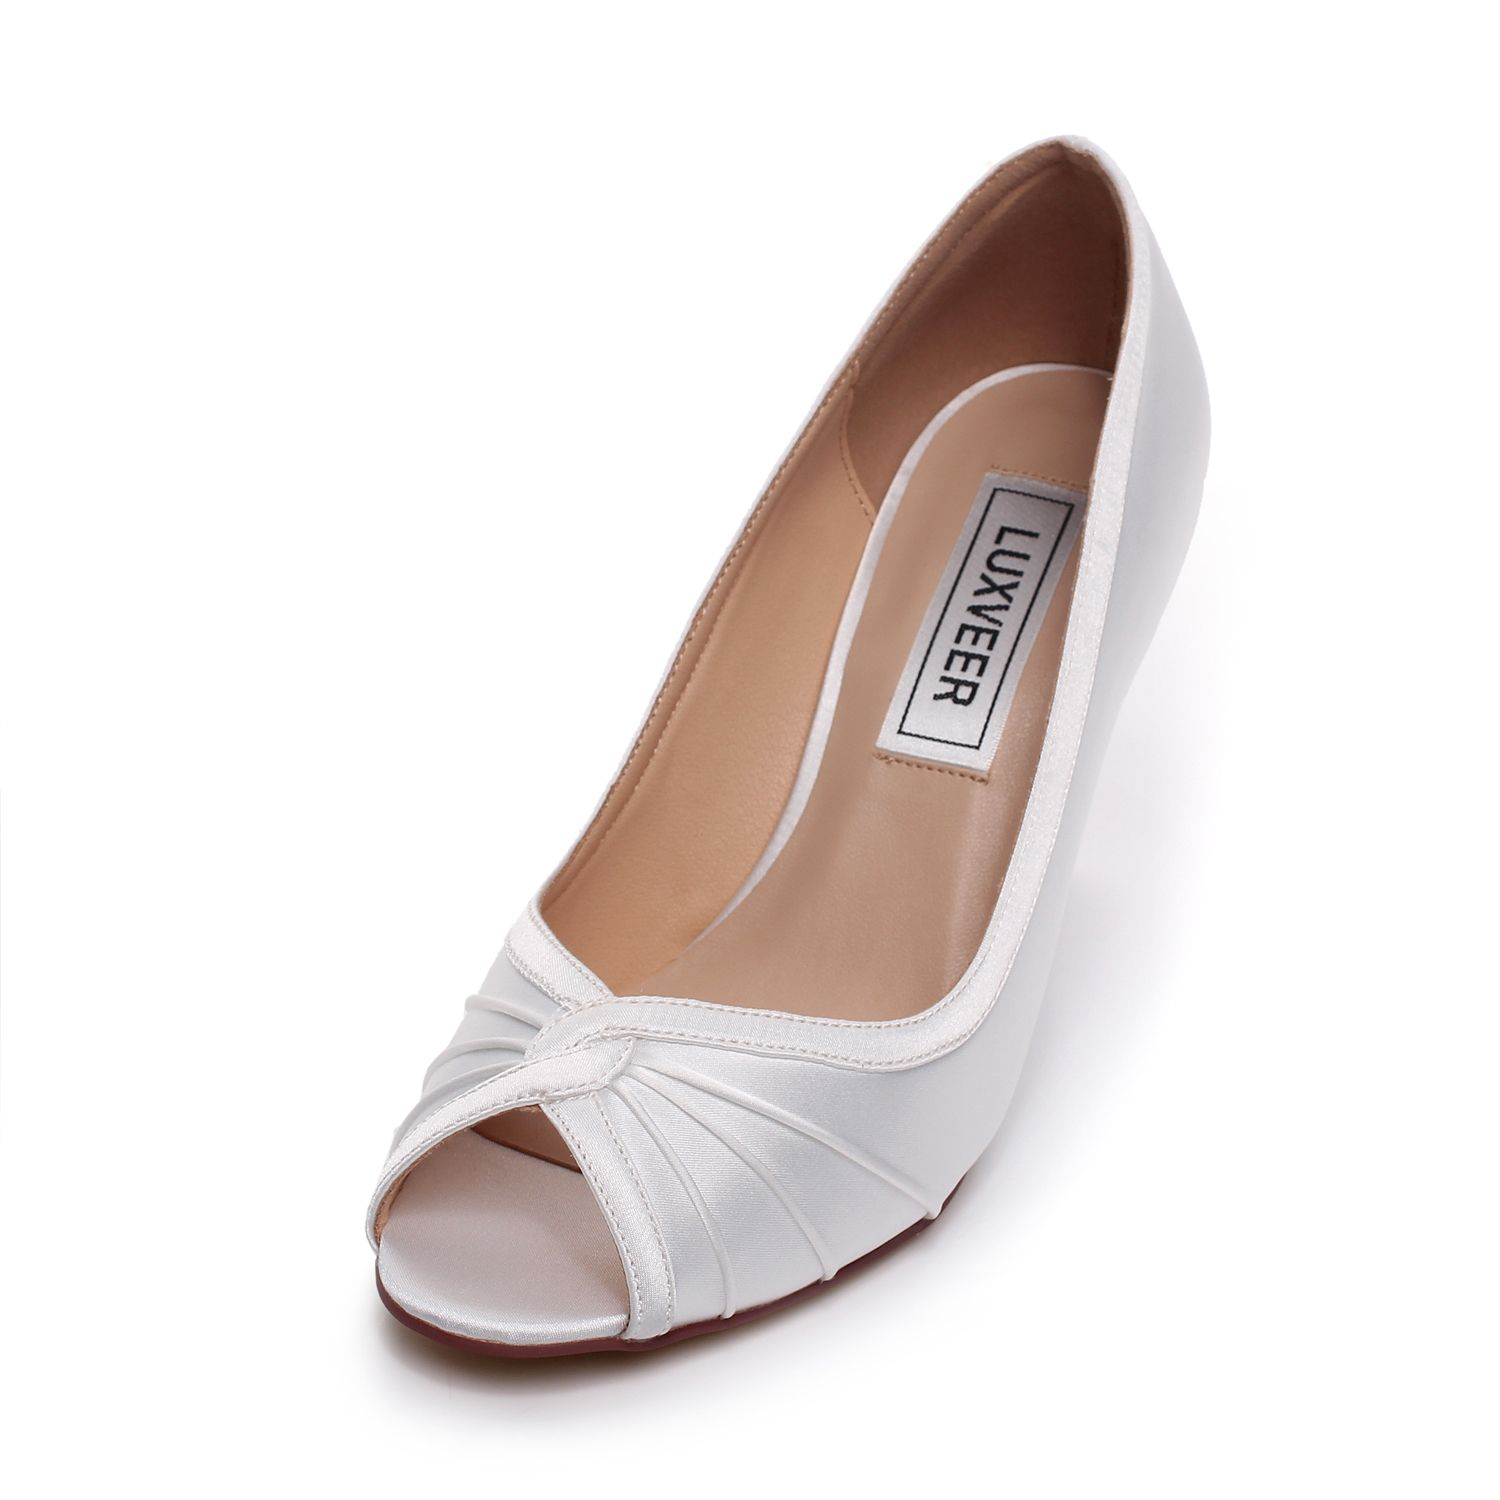 satin wedding shoes womens sandals strap sandals Comfortable silver ...